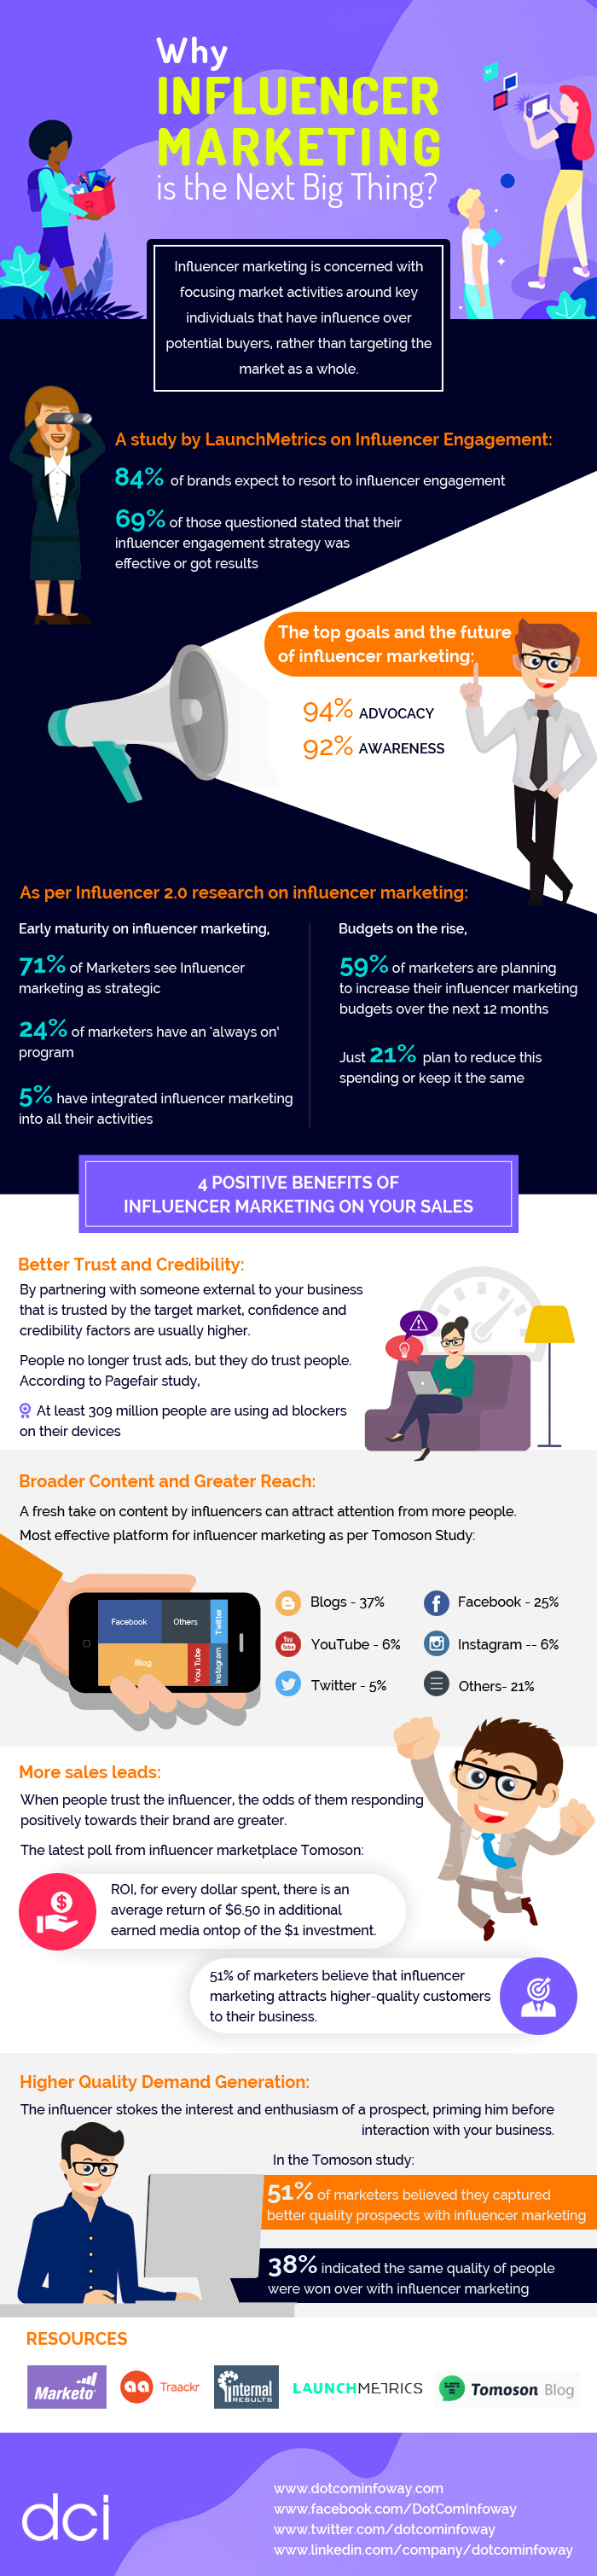 Infographic: Influencer Marketing